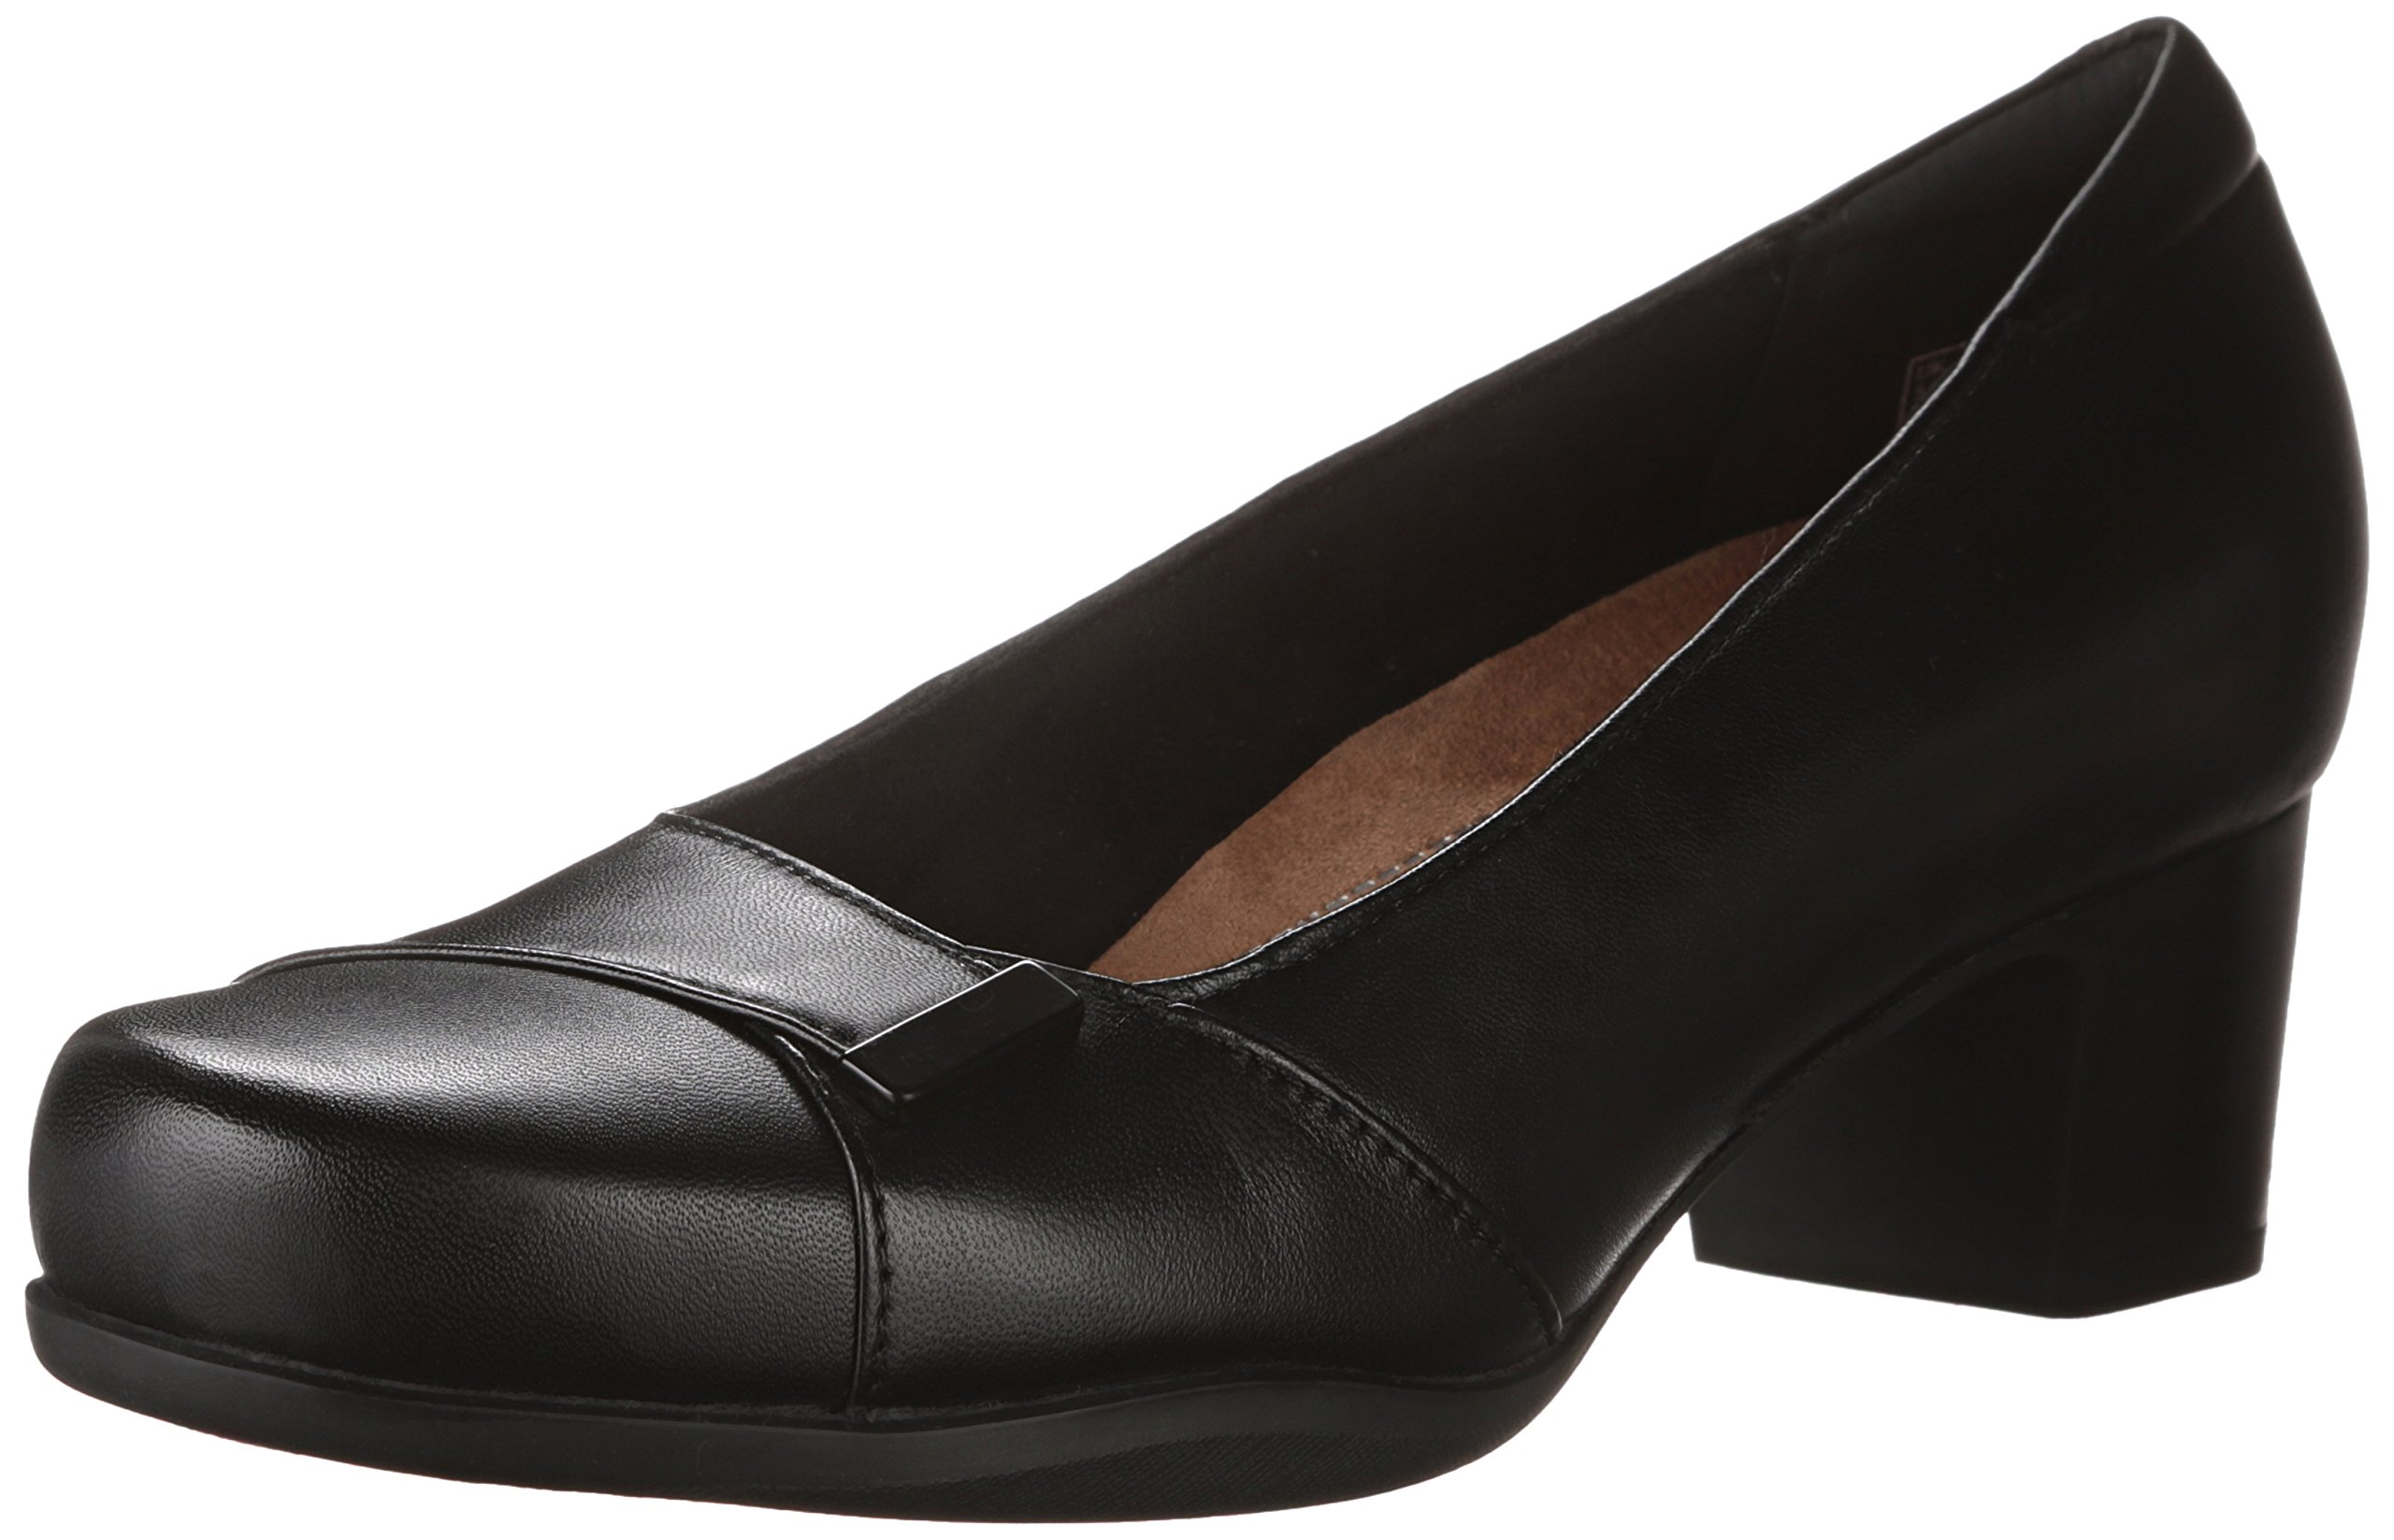 CLARKS Women's Rosalyn Belle Black Leather 9.5 D - Wide